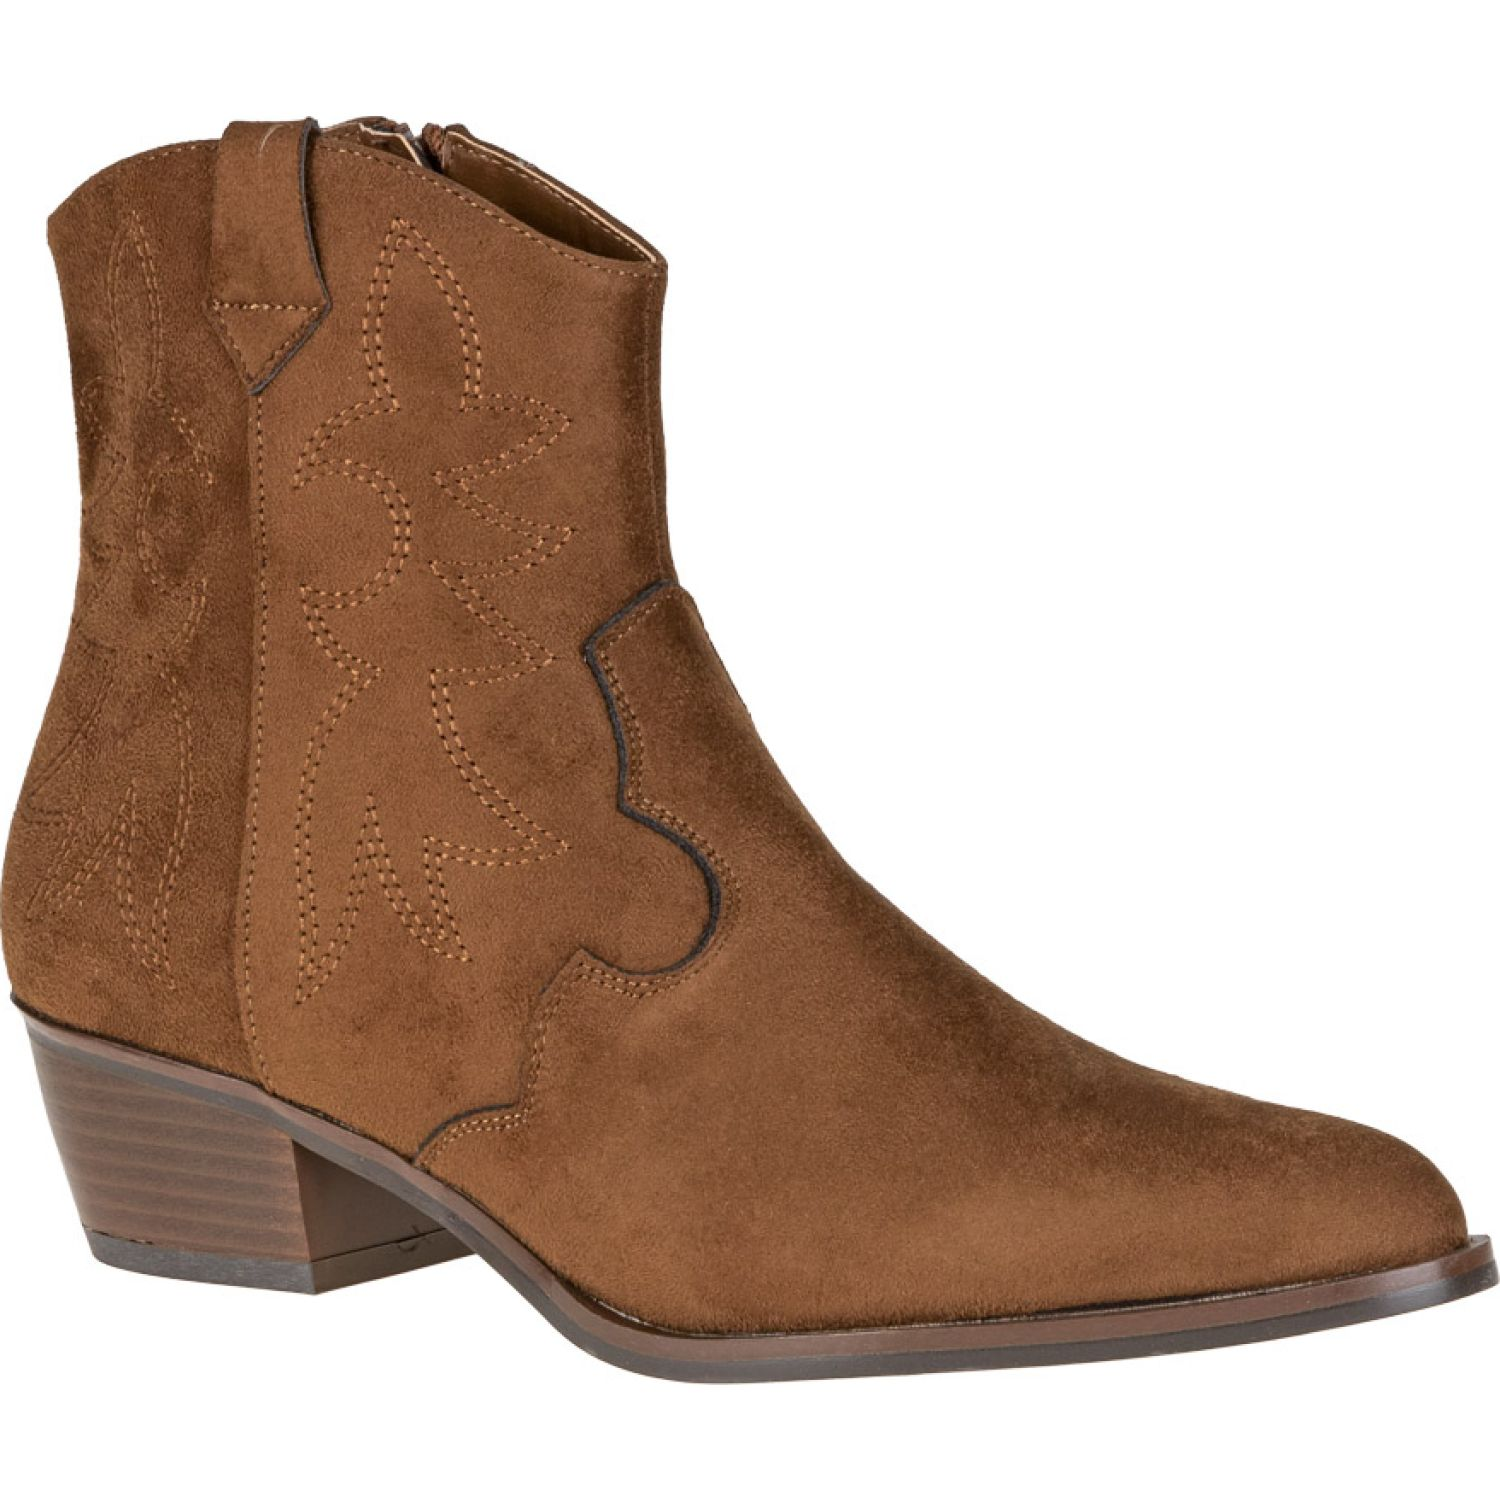 FOOTLOOSE Fch-Rn21i20 CAMEL Botines